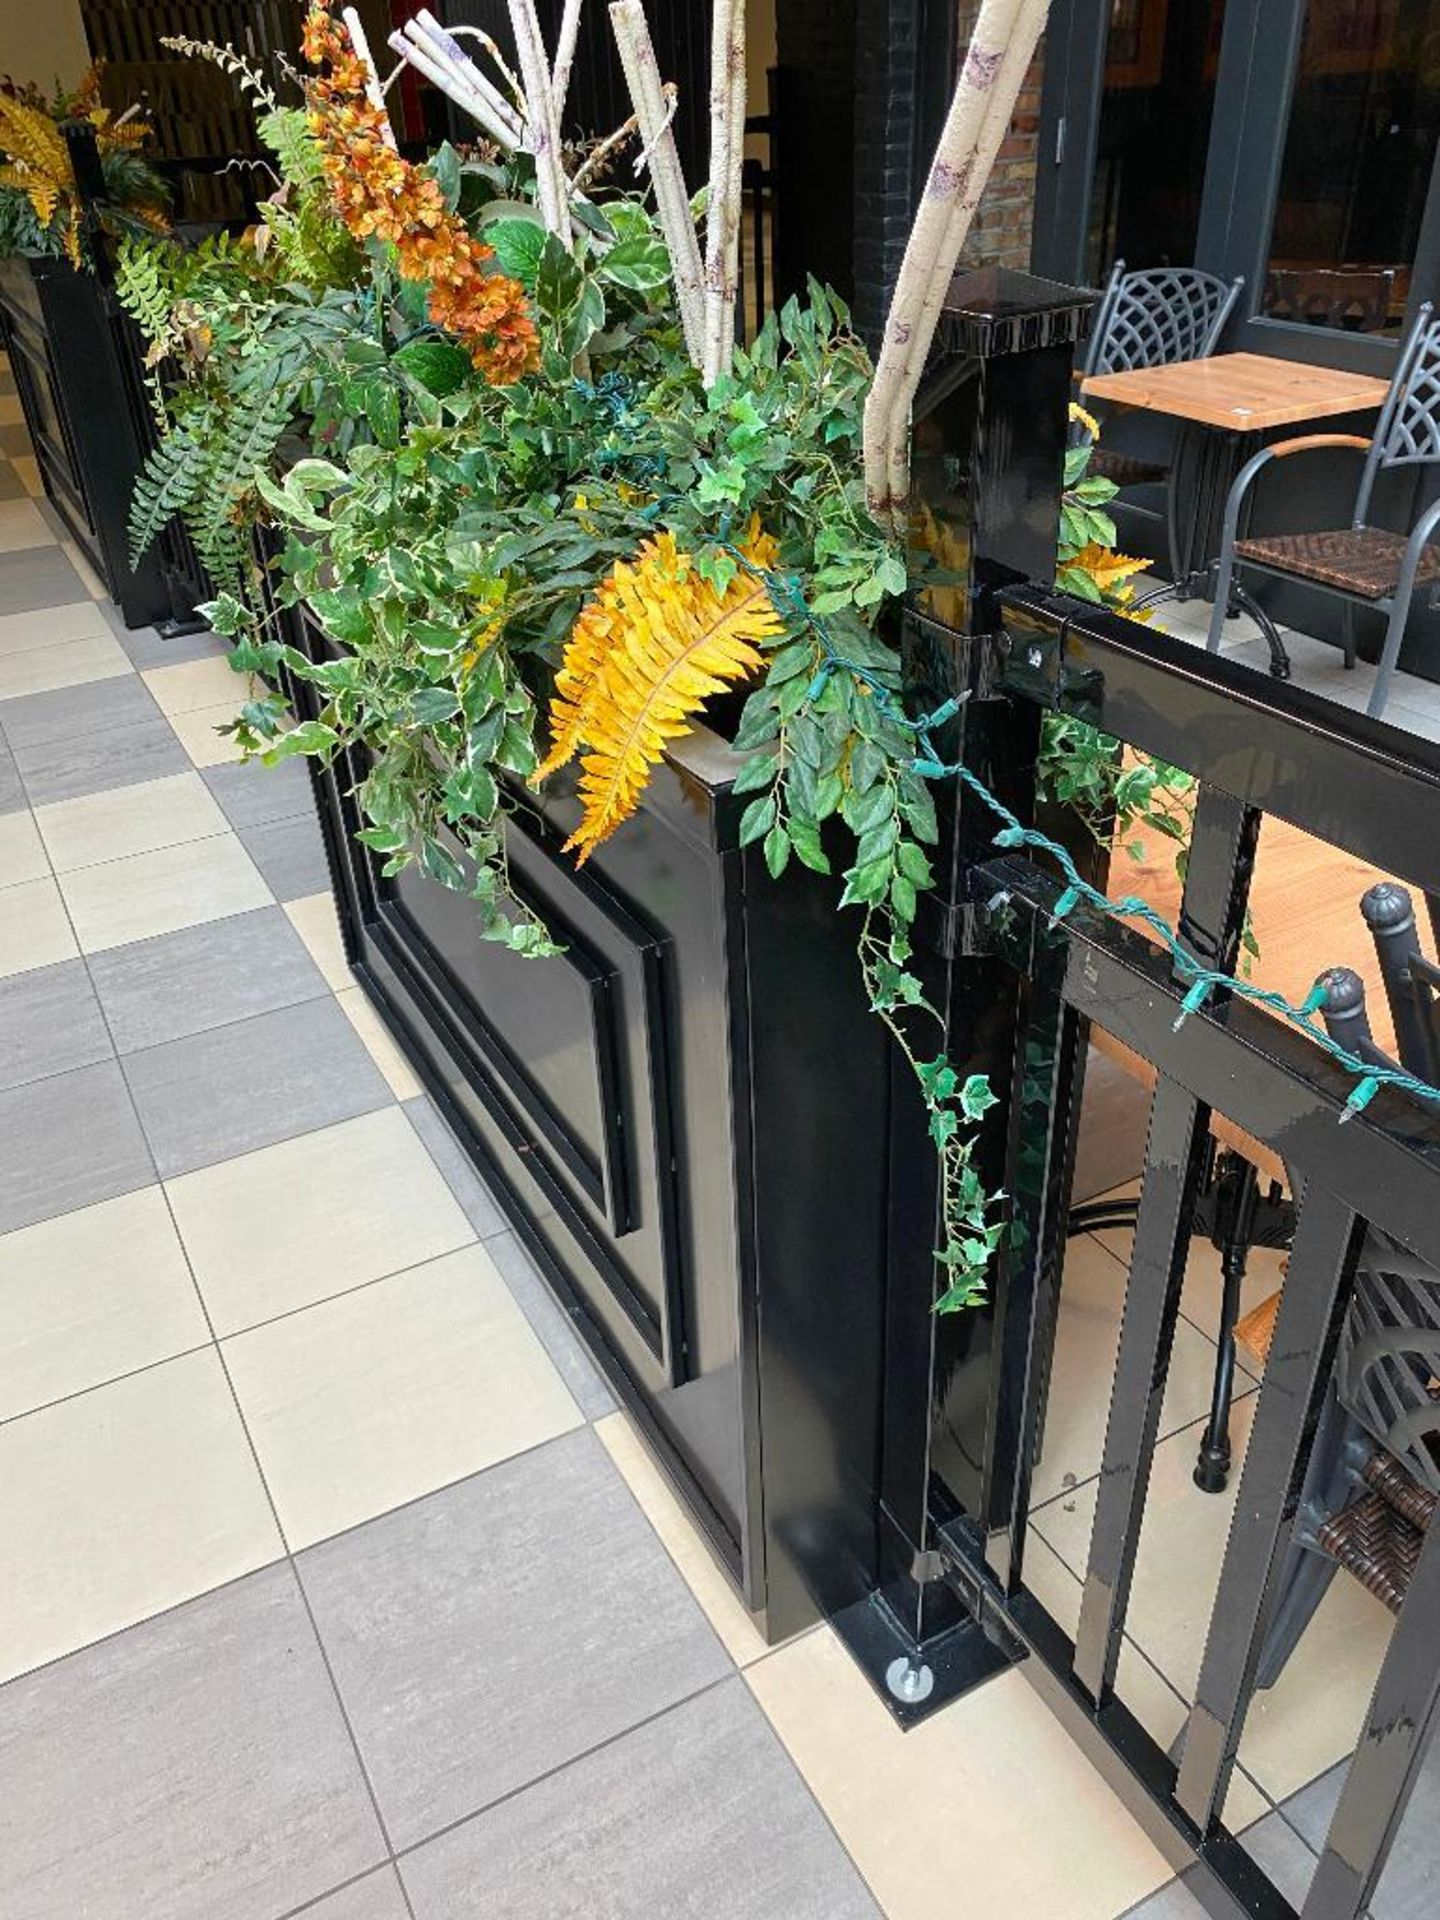 APPROX. 60' OF BLACK METAL RAILING & PLANTER - NOTE: REQUIRES REMOVAL FROM FLOOR, PLEASE INSPECT - Image 3 of 4